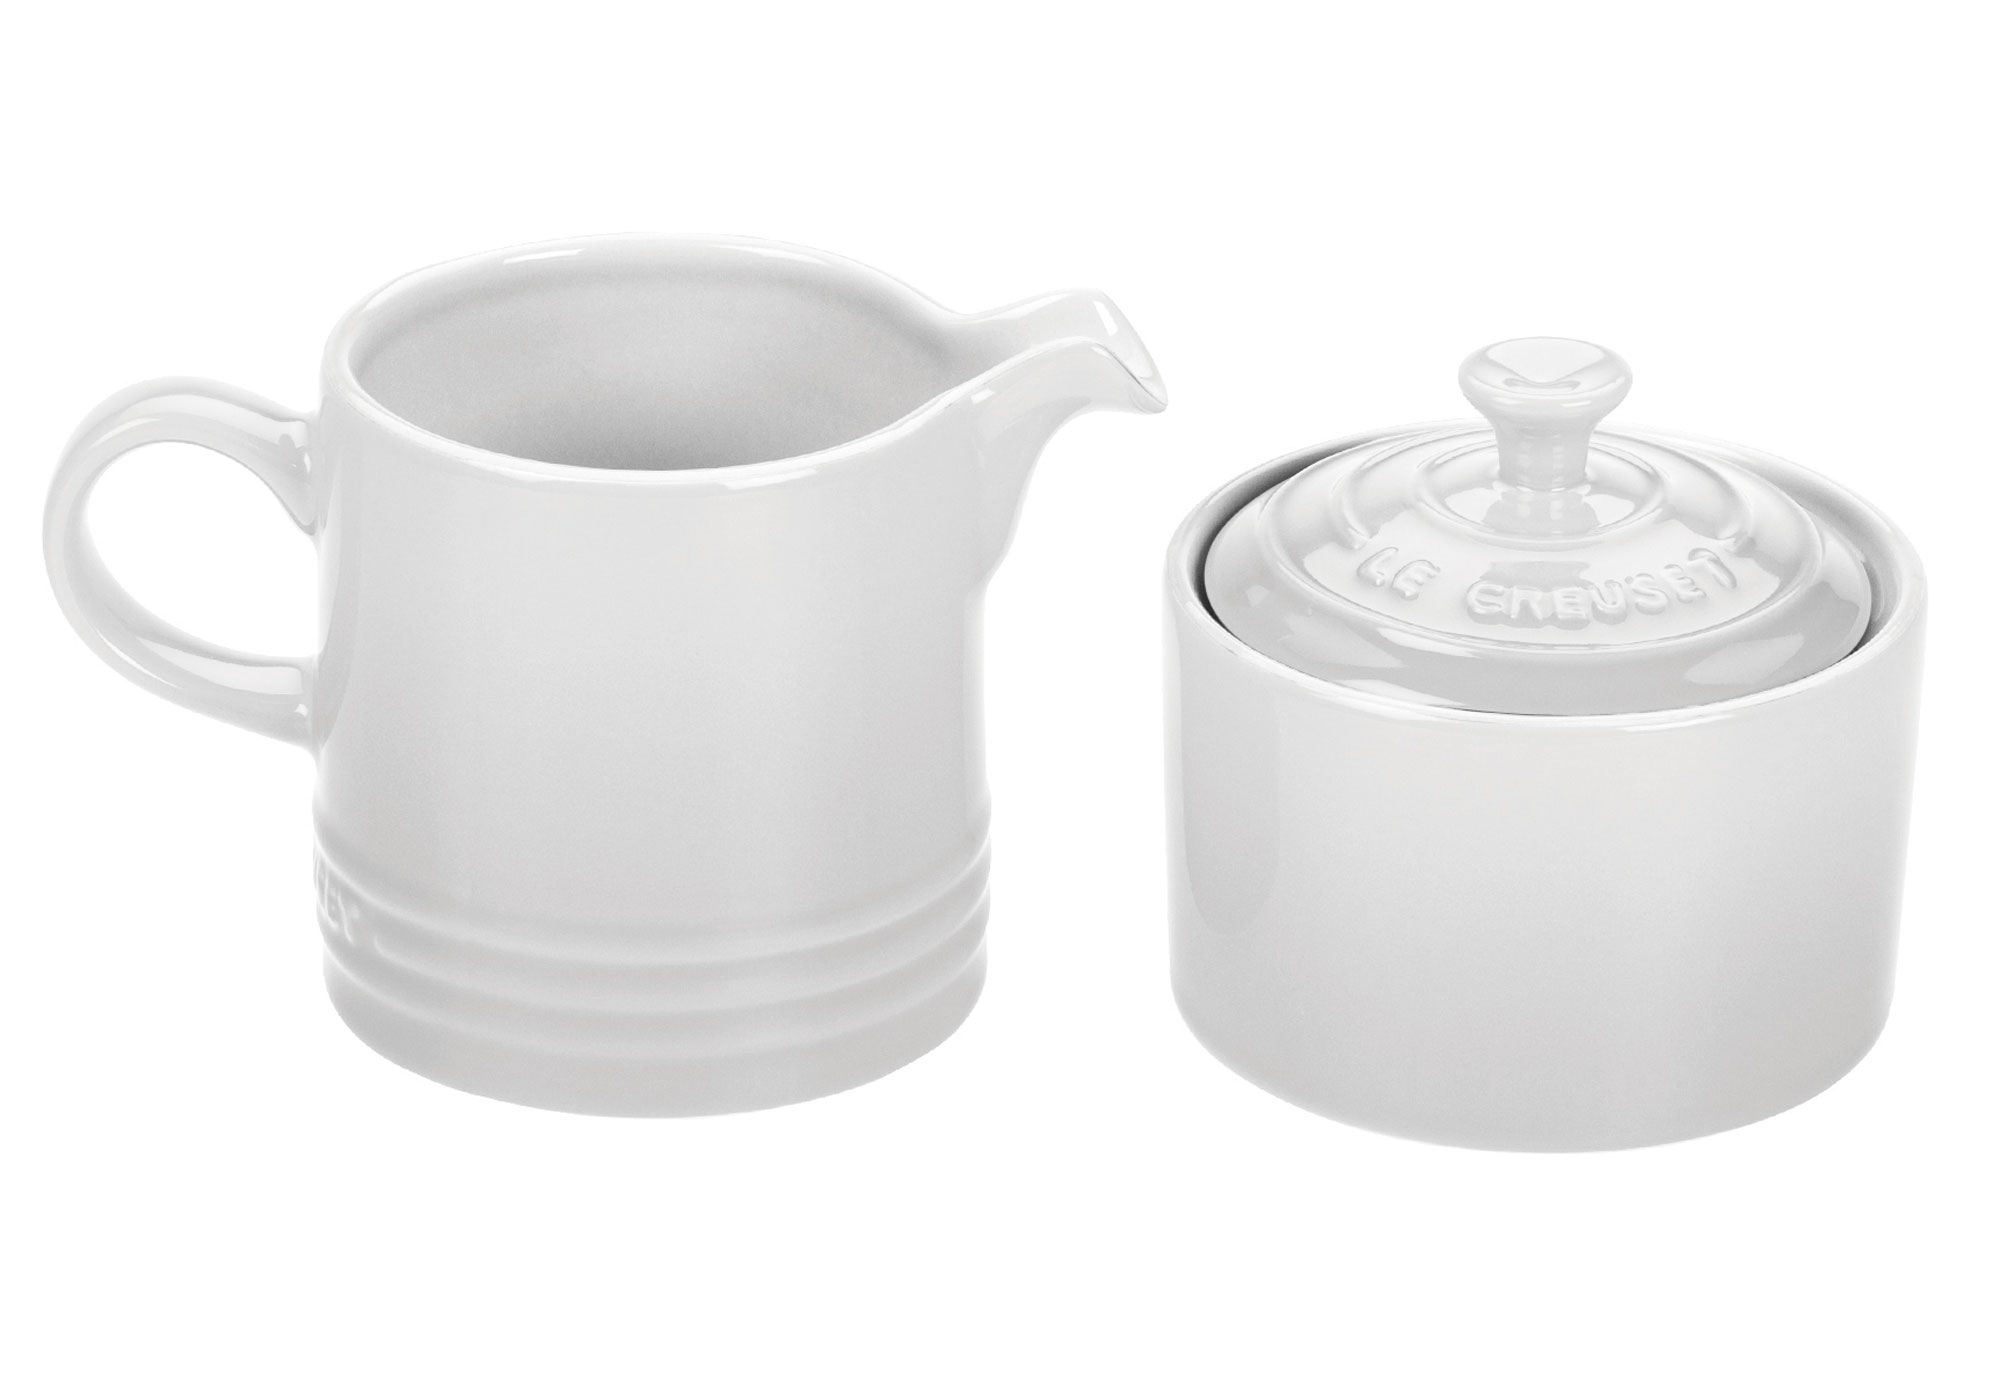 le creuset stoneware cream  sugar set white  cutlery and more - cherry red